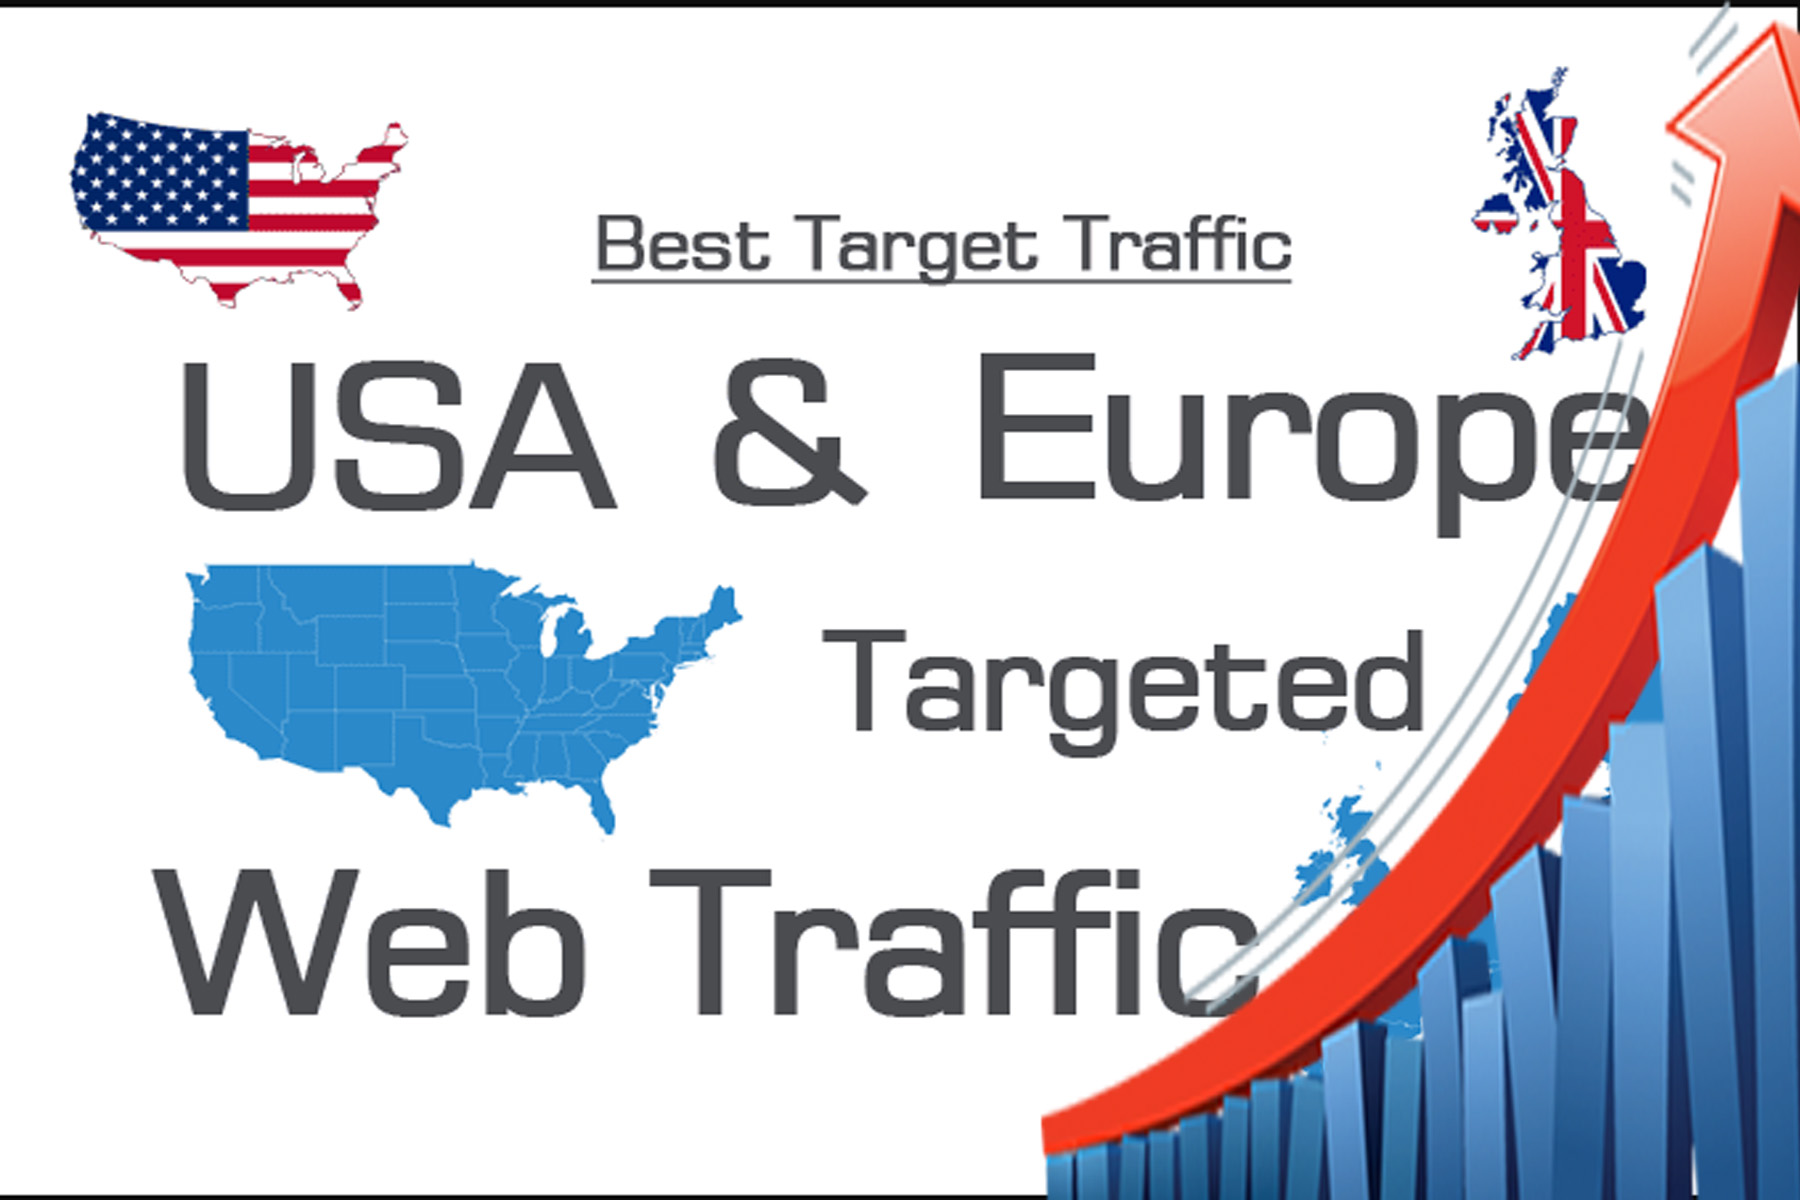 drive human visitors to any kind of your website 1300+ daily visitors for 30 days